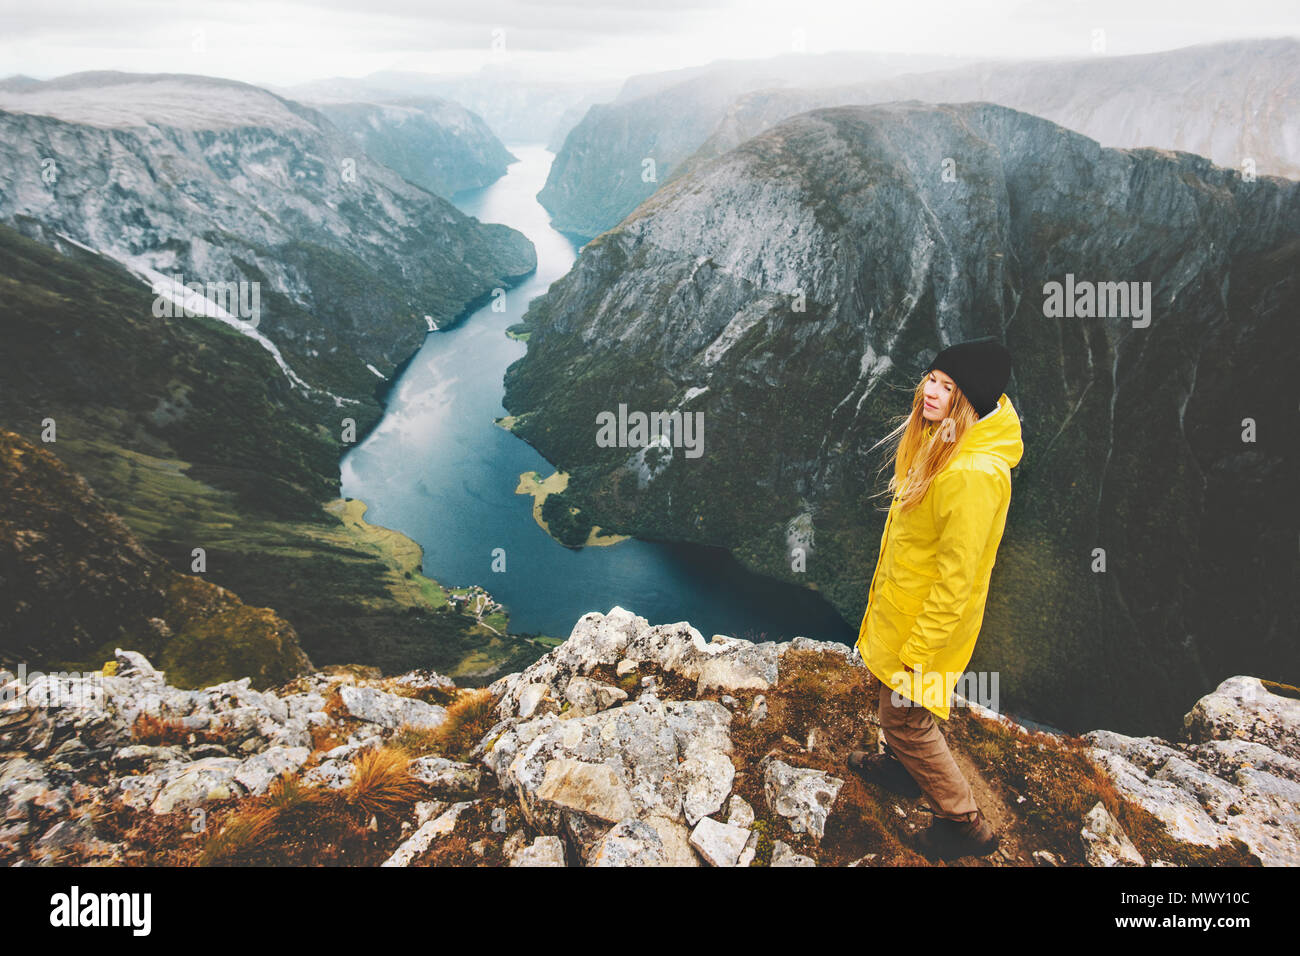 Woman traveler on mountain cliff standing alone traveling in Norway Lifestyle adventure vacations aerial fjord view girl wearing yellow raincoat walki - Stock Image